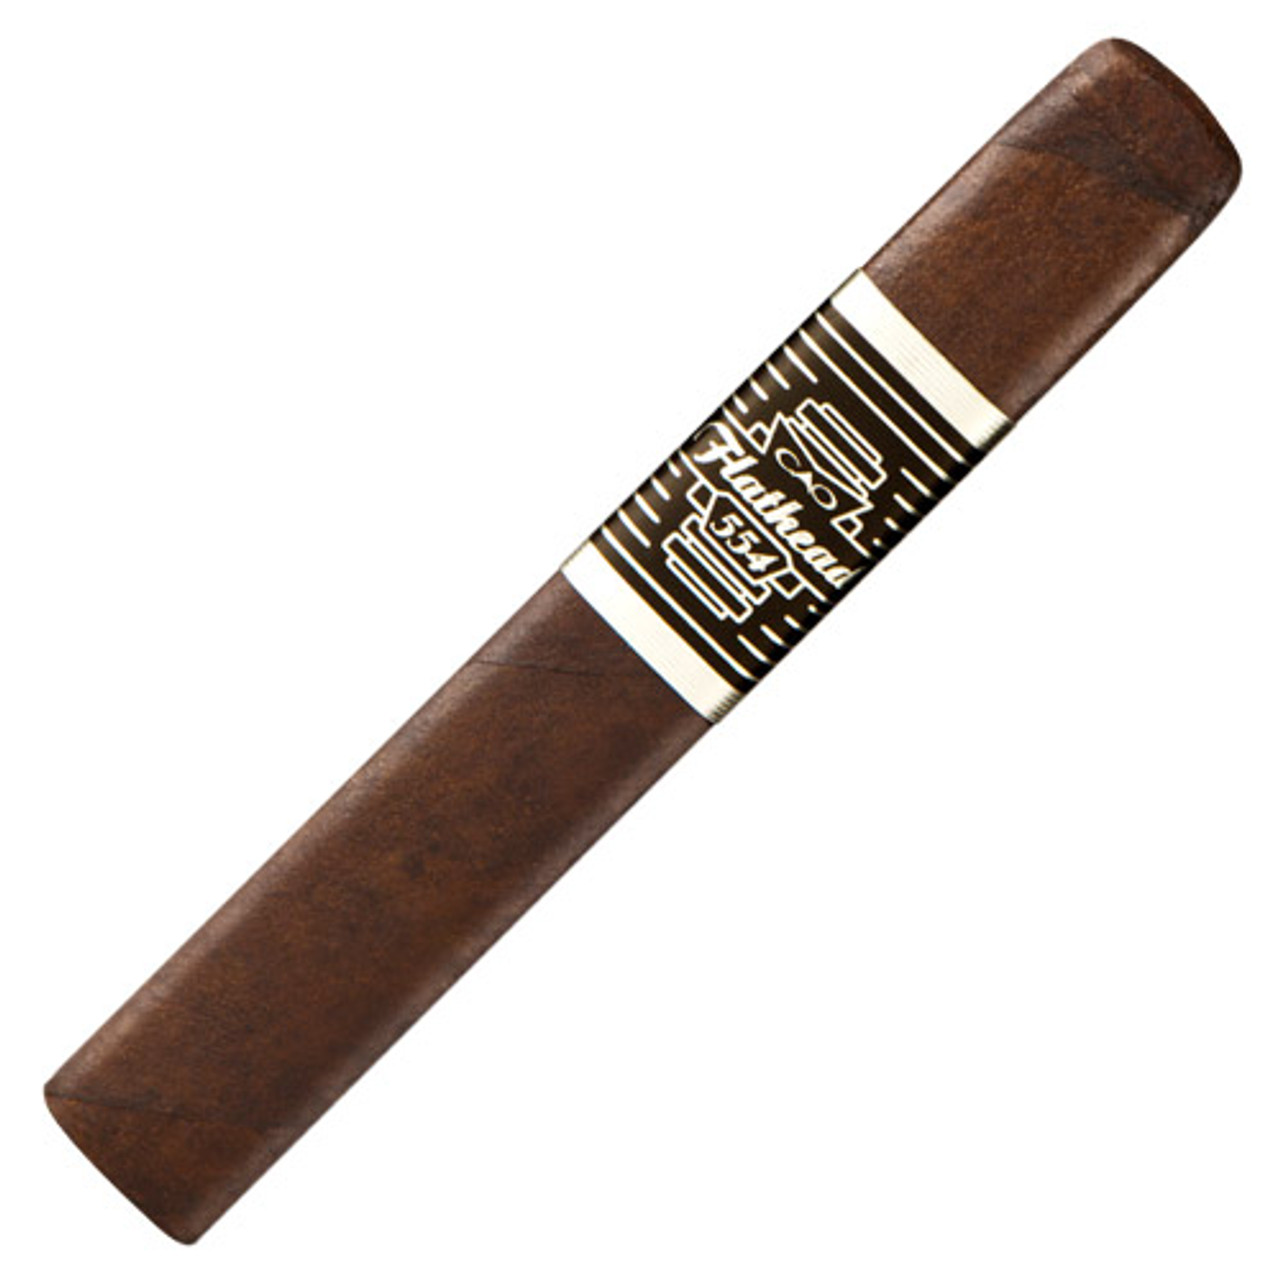 CAO Flathead Camshaft 5-Pack Cigars - 5.5 x 54 (Pack of 5)